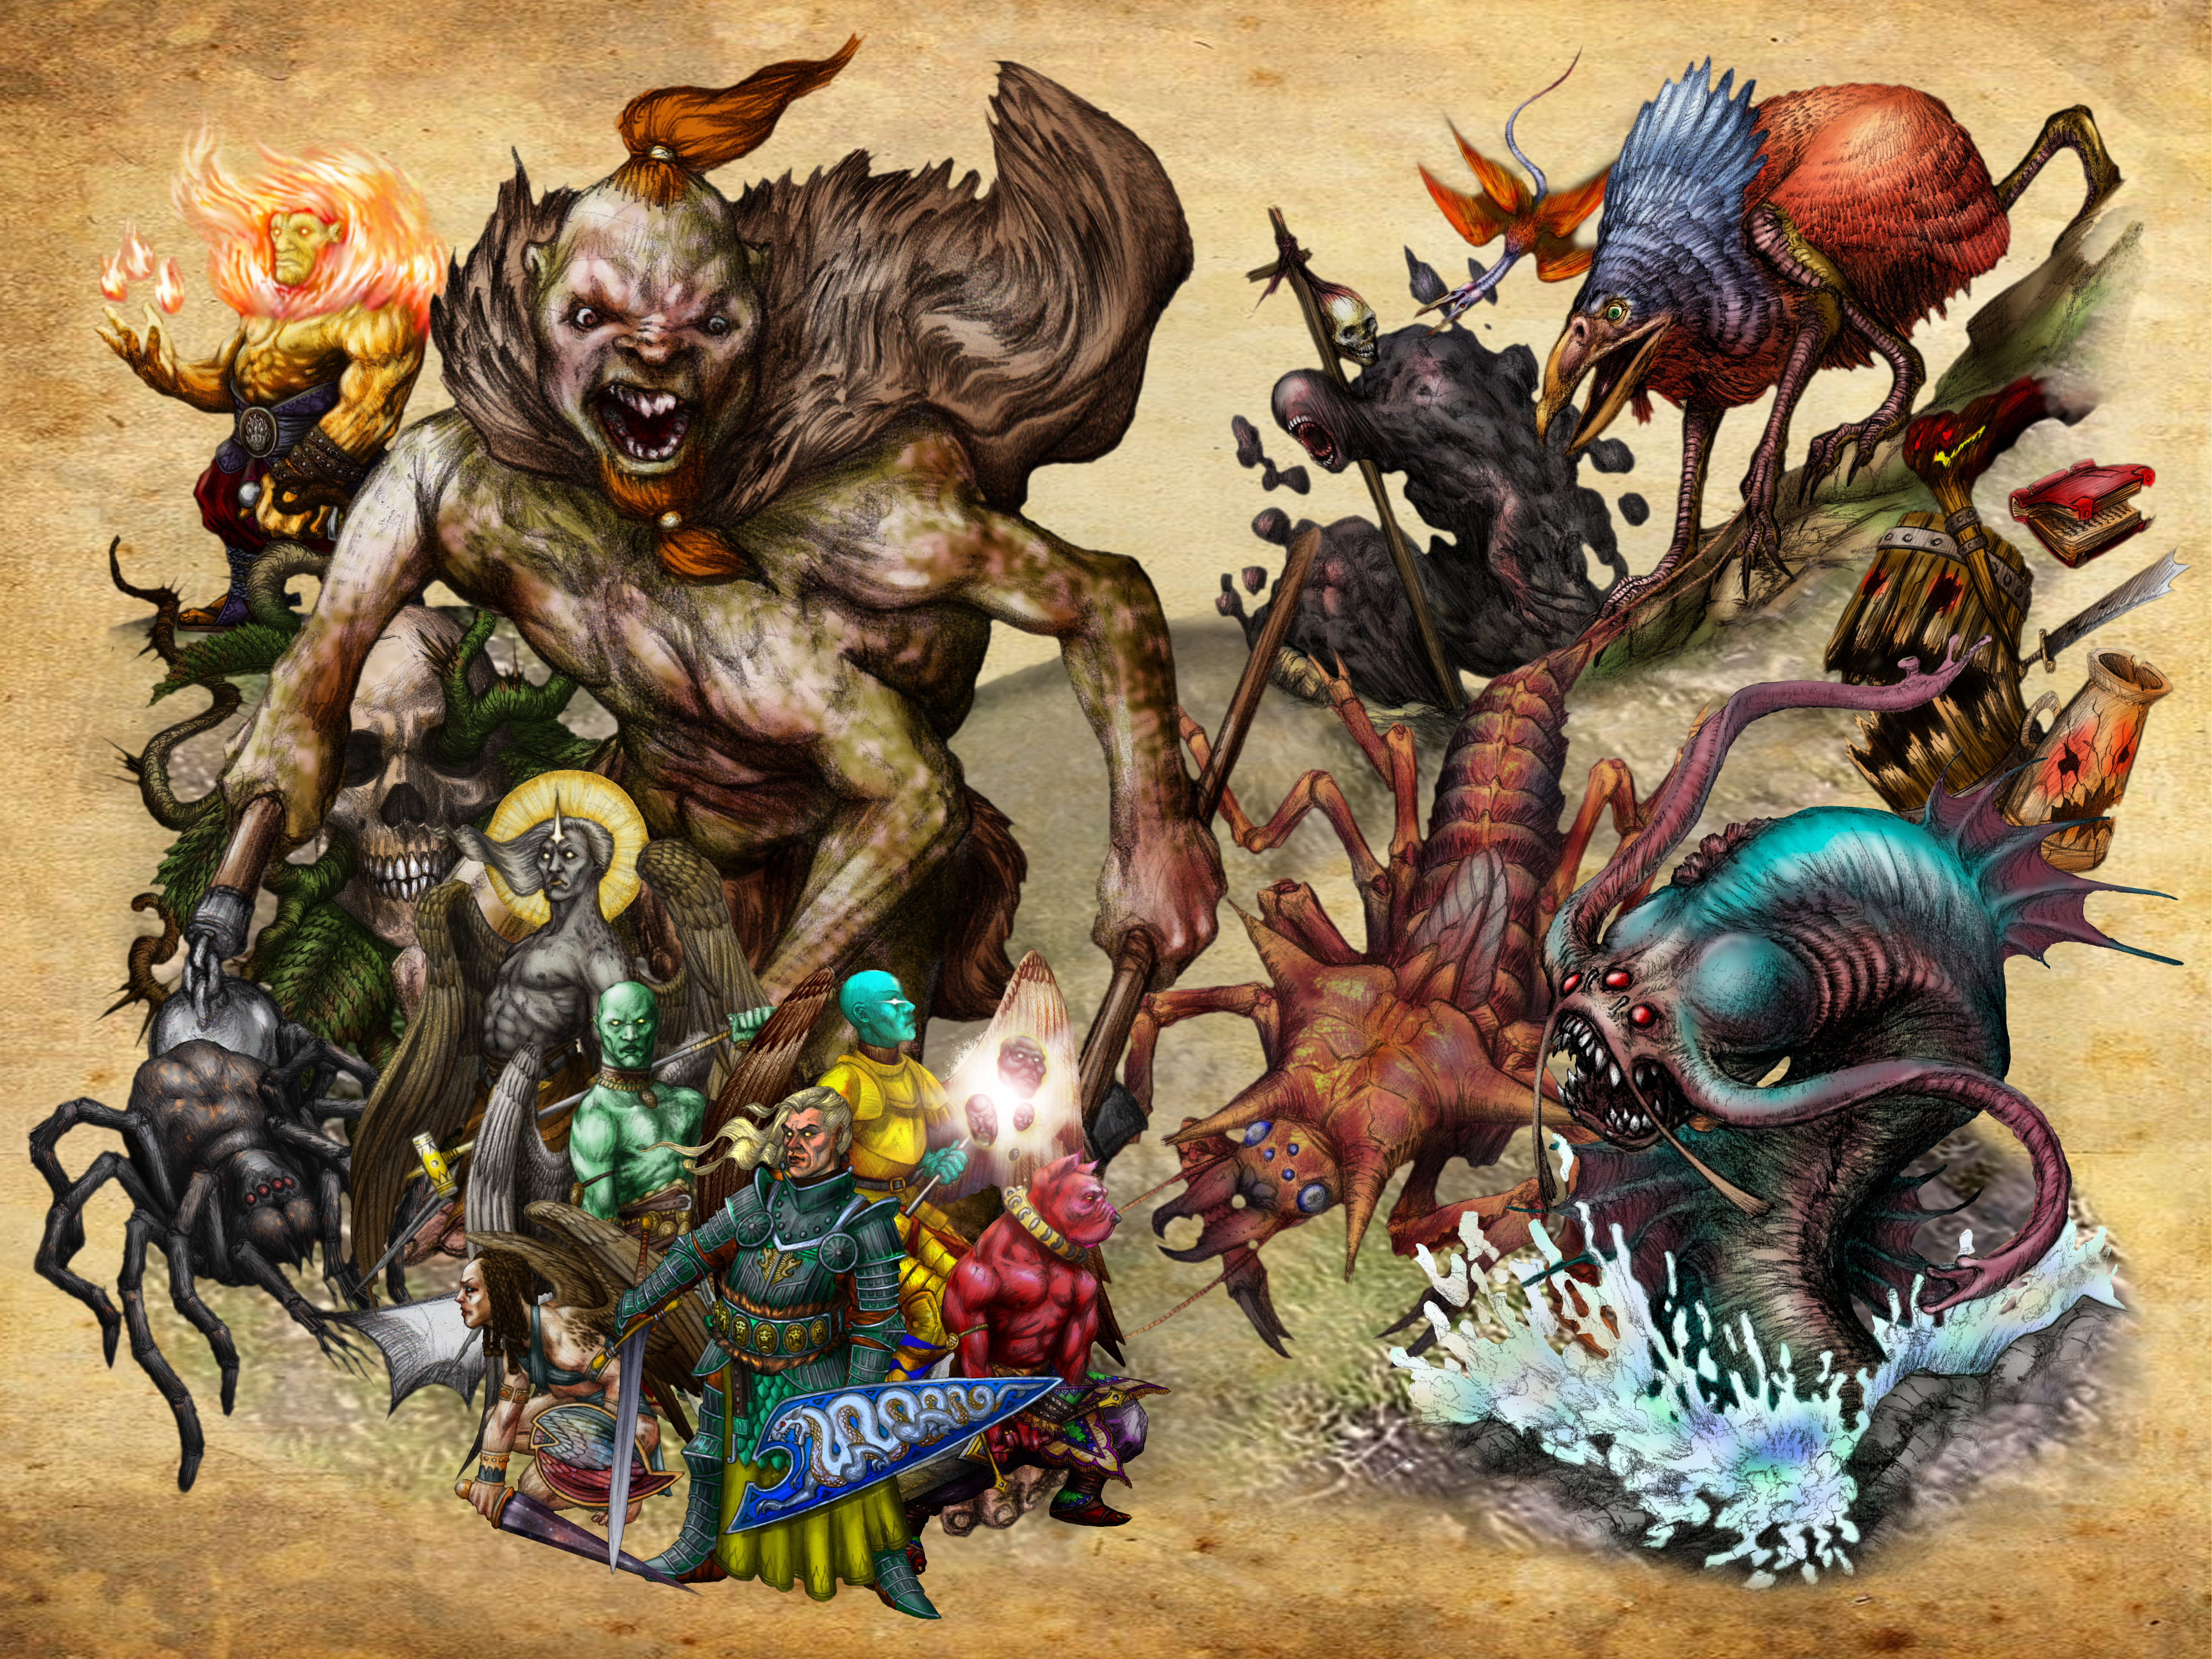 A-list DND Monsters by ahmonza on Newgrounds